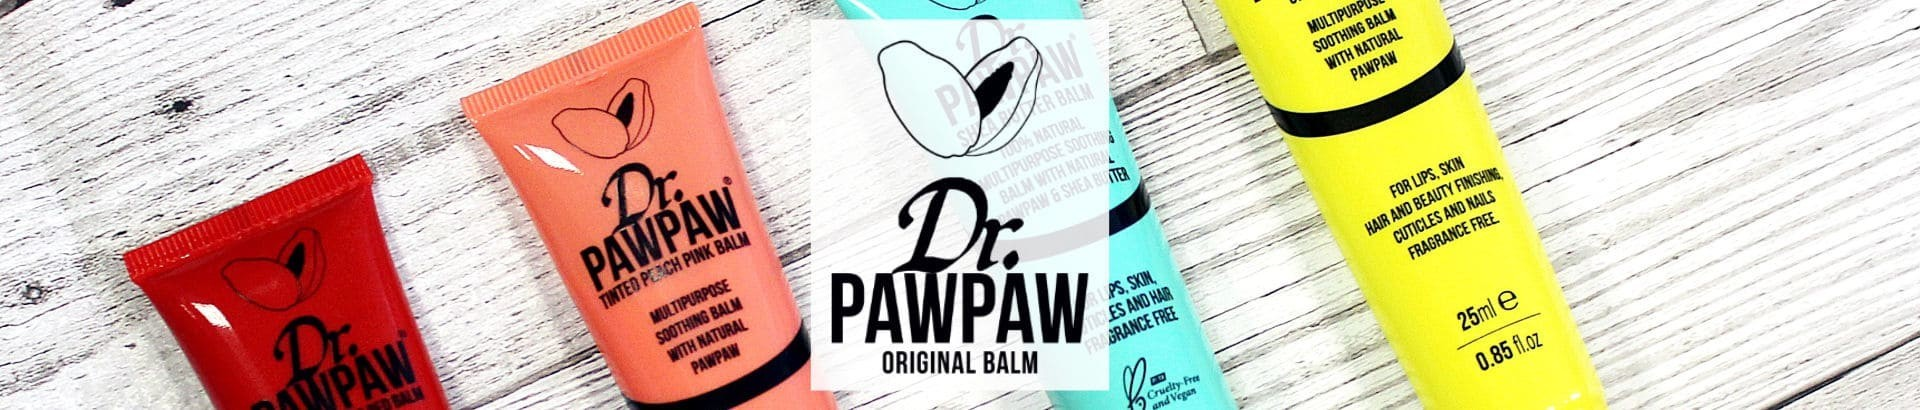 France Maia -  Dr Pawpaw